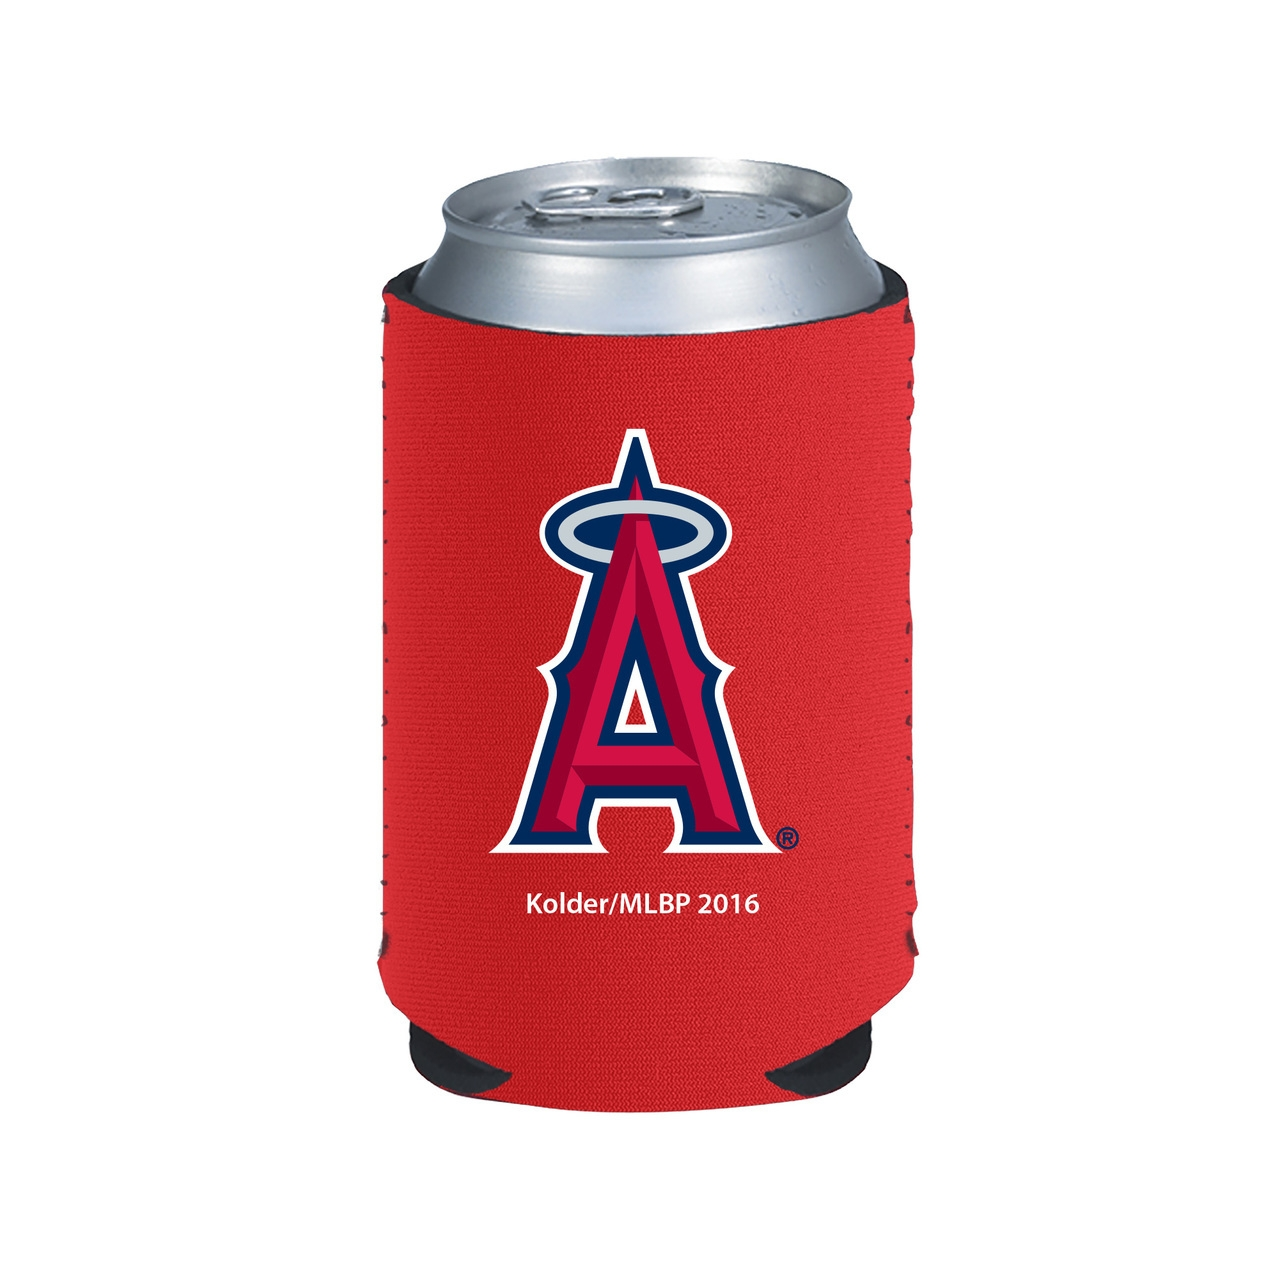 Mlb Baseball Los Angeles Angels Of Anaheim Indoor Home Office Lanyards Badge Holders - 8686750024 - Los Angeles Angels Of Anaheim Kolder Kaddy Can Holder 8686750024